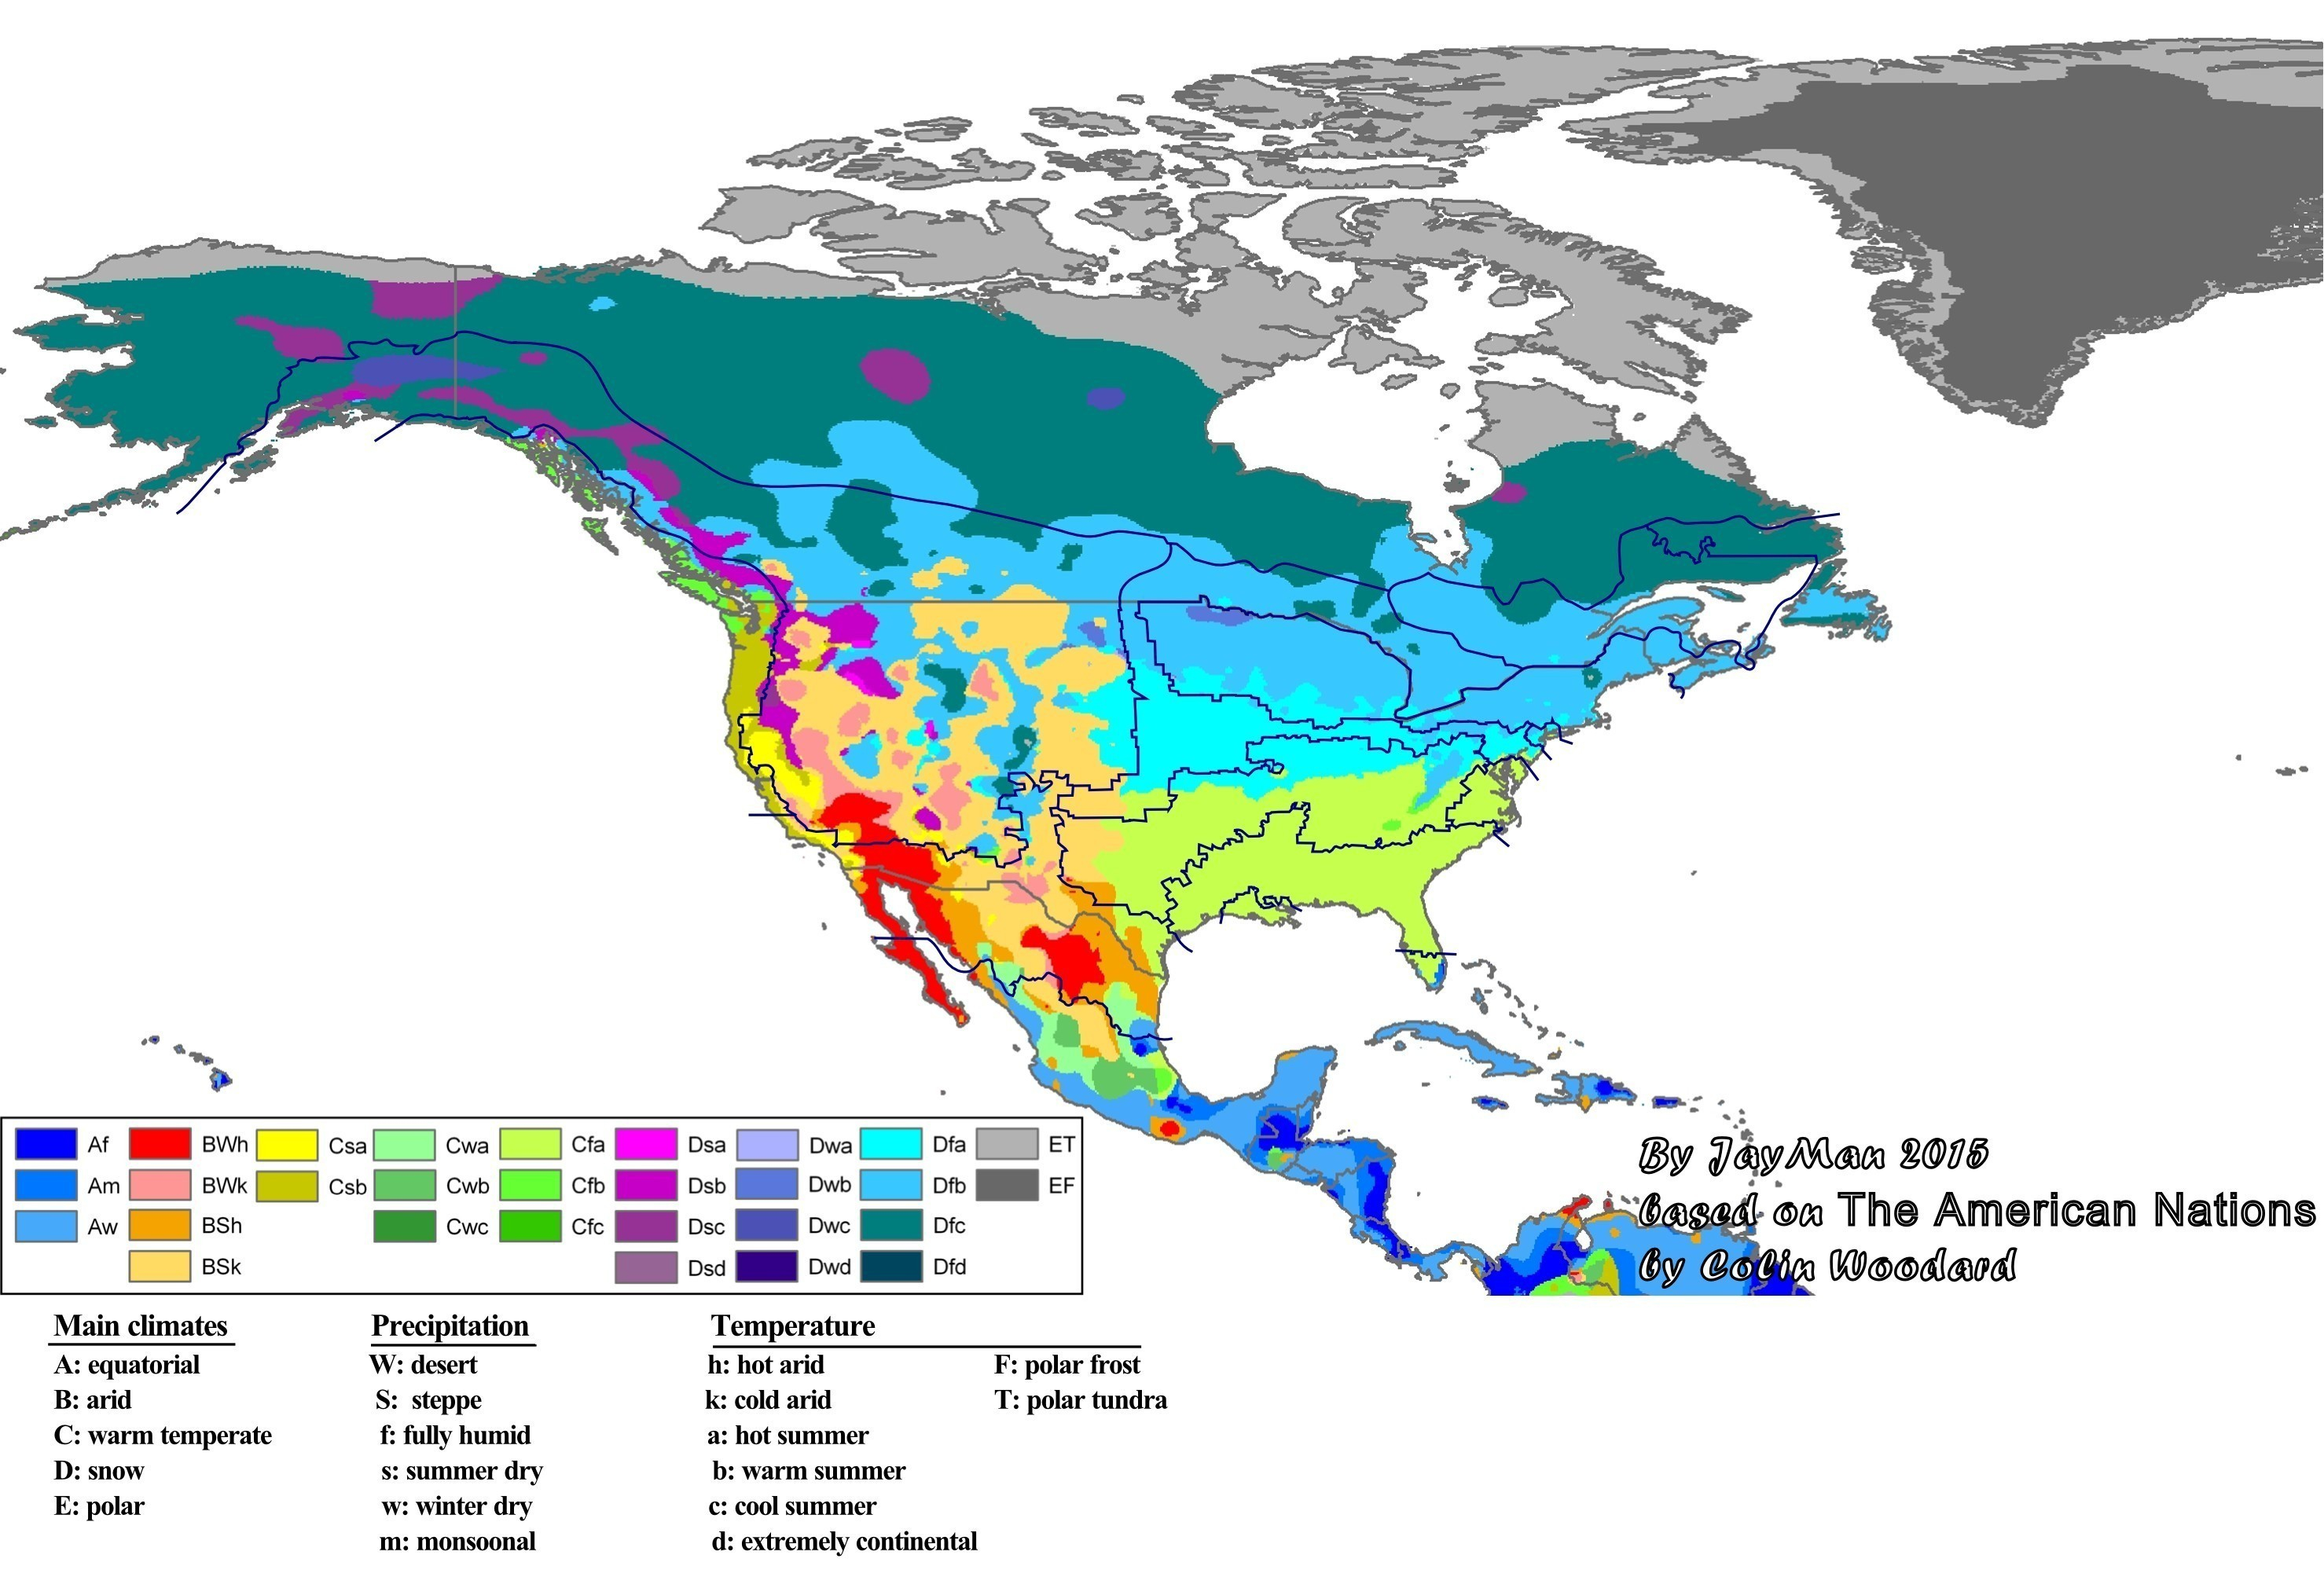 Us Growing Zone Map Printable Usda Hardiness Zones New Us Climate - Printable Usda Hardiness Zone Map